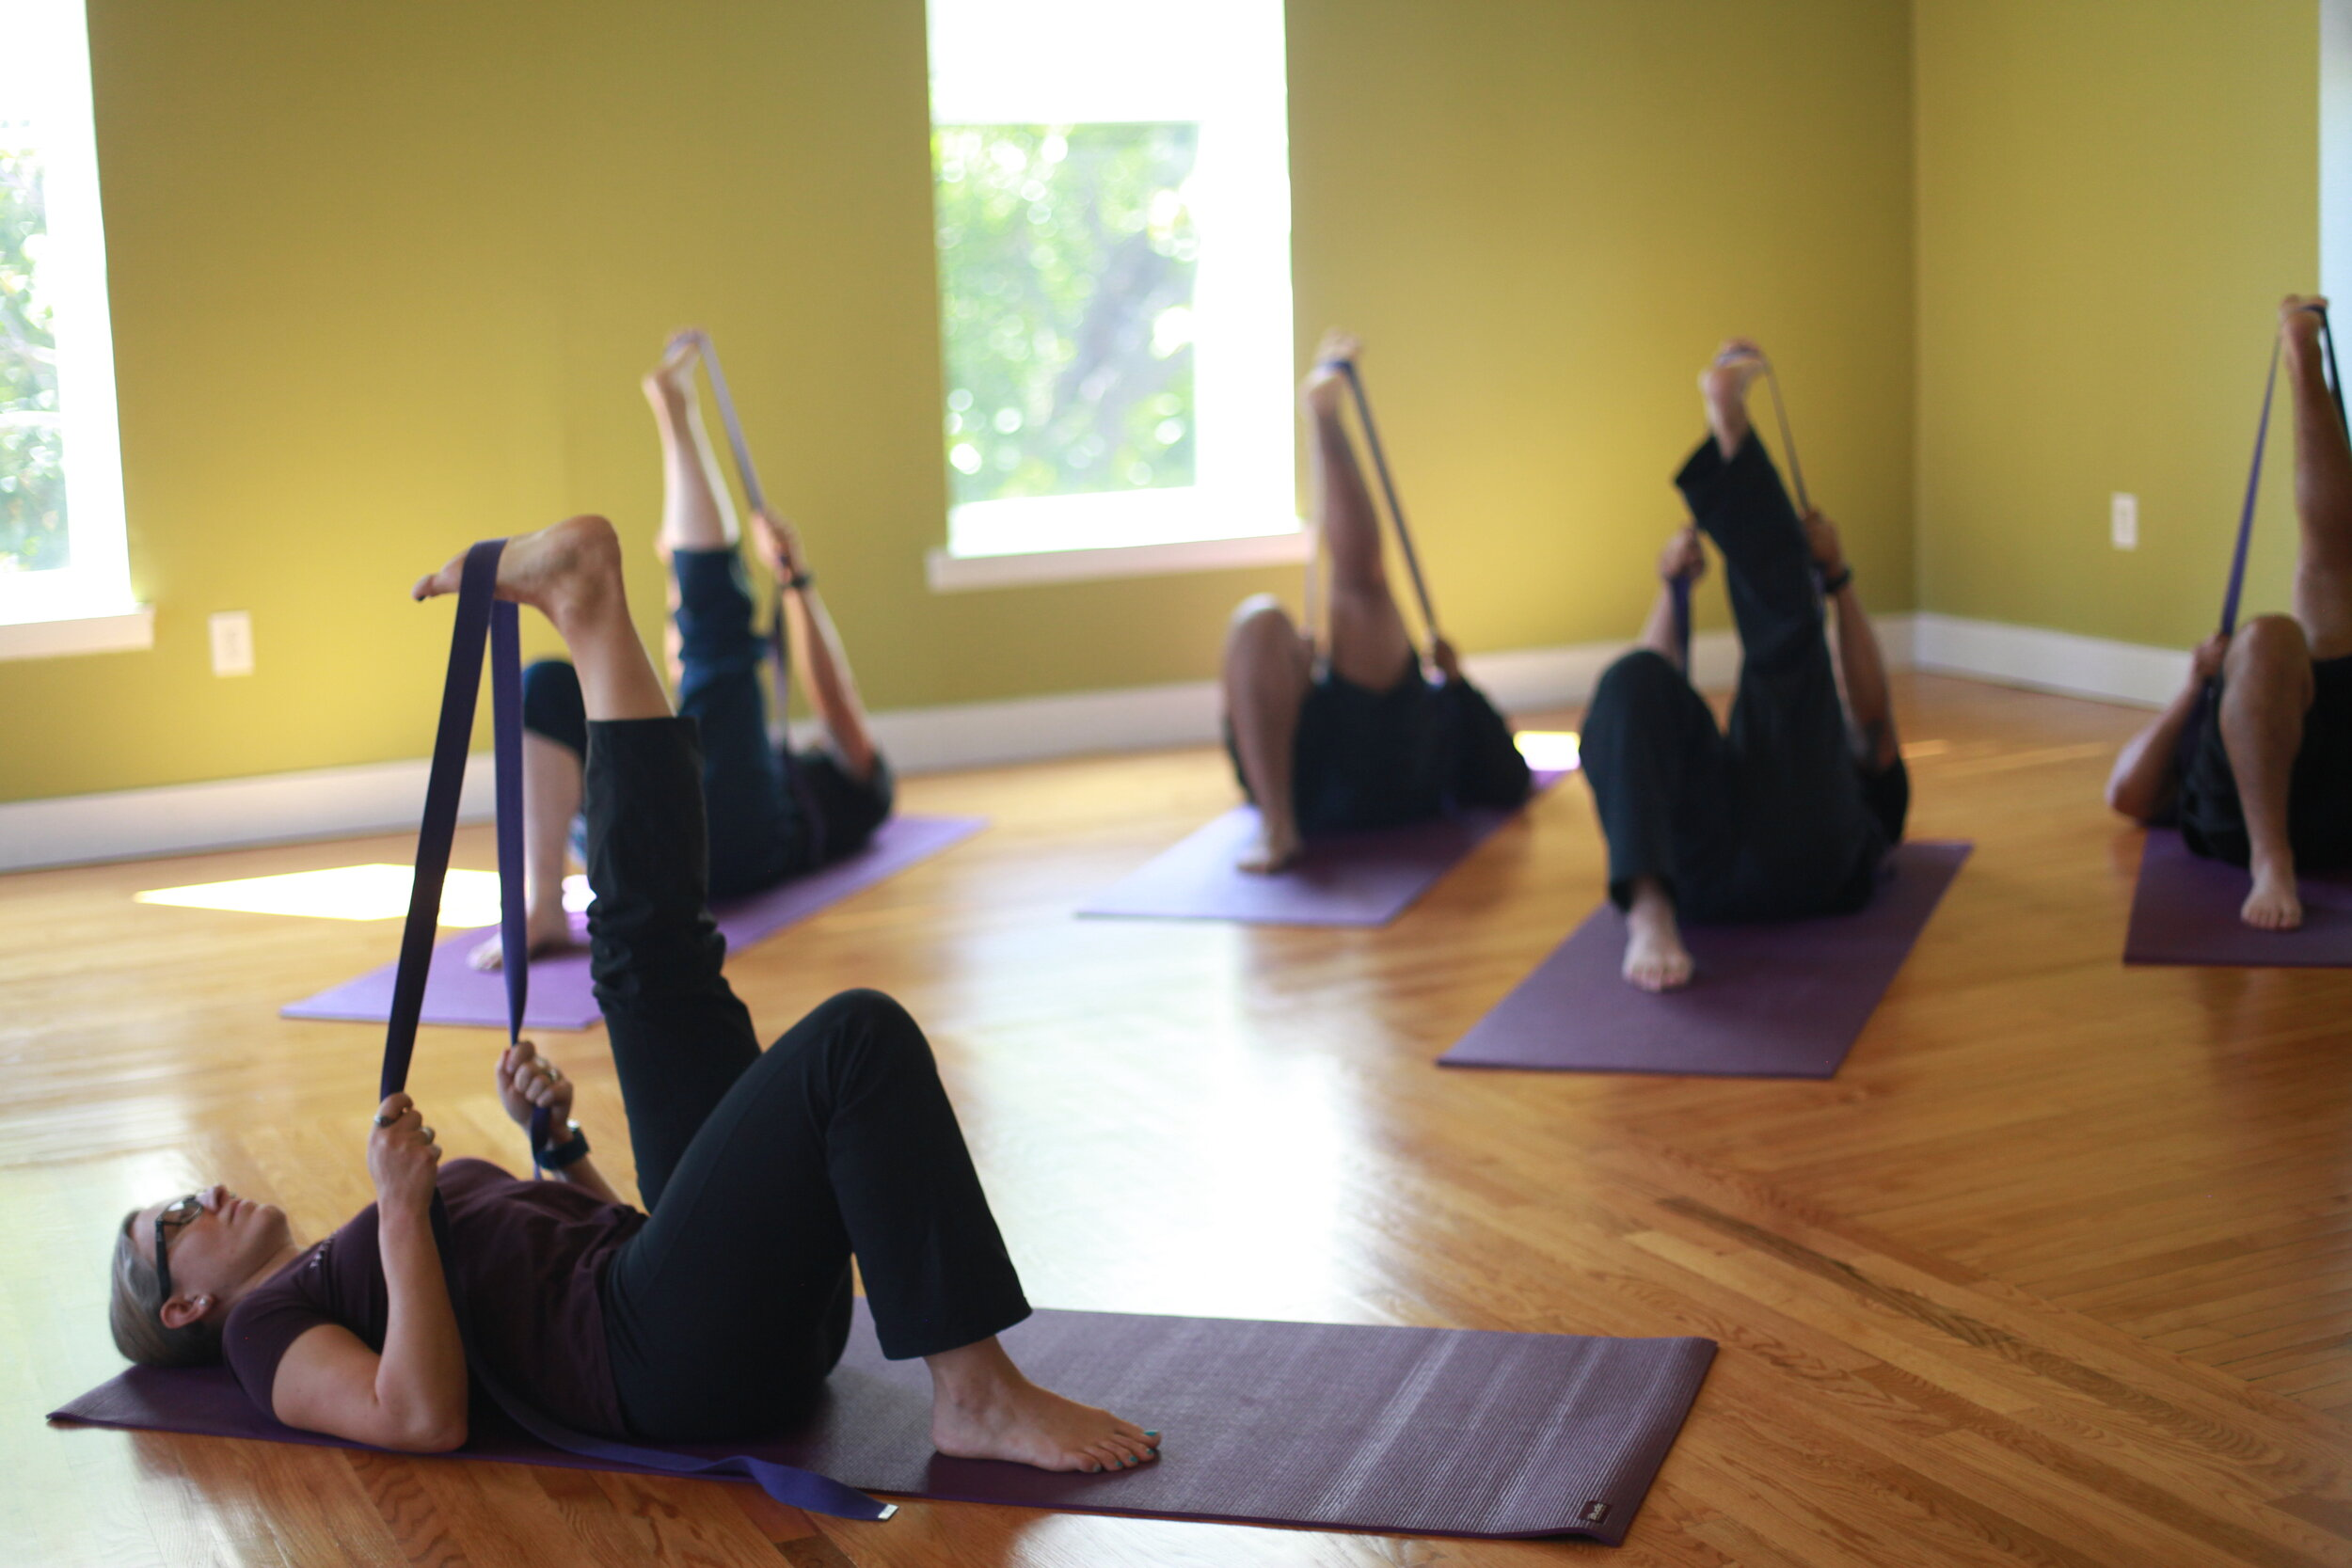 Interested in Becoming Certified to Teach? - Announcing our new 200 hr Mindful Resilience Yoga Teacher Training